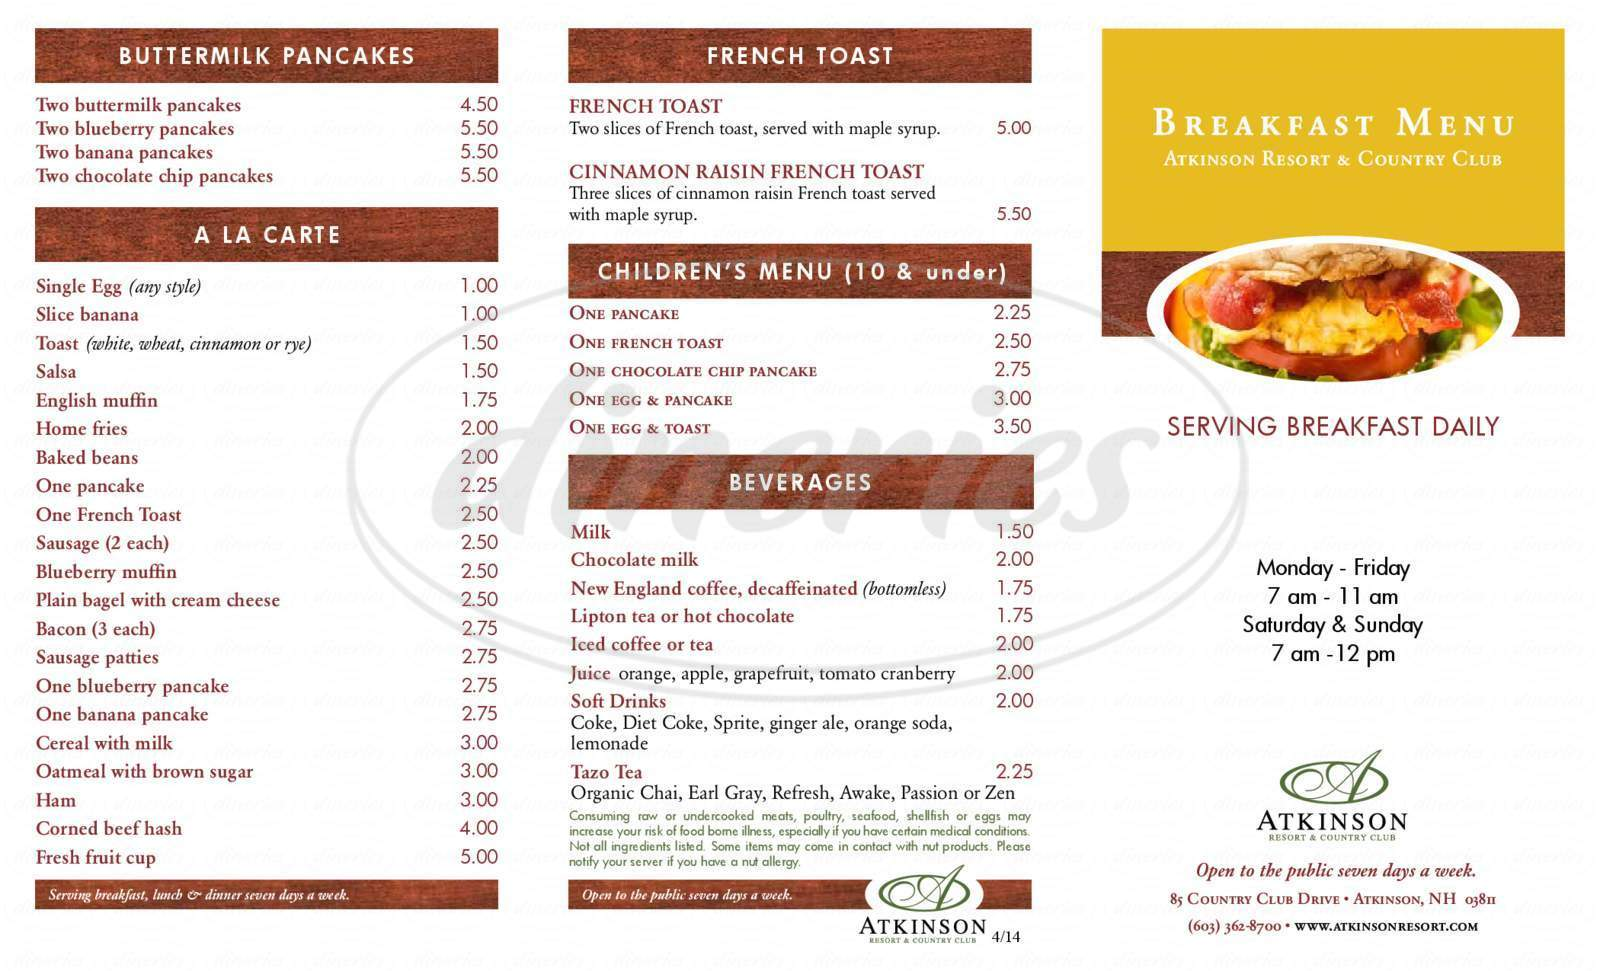 menu for Atkinson Resort & Country Club